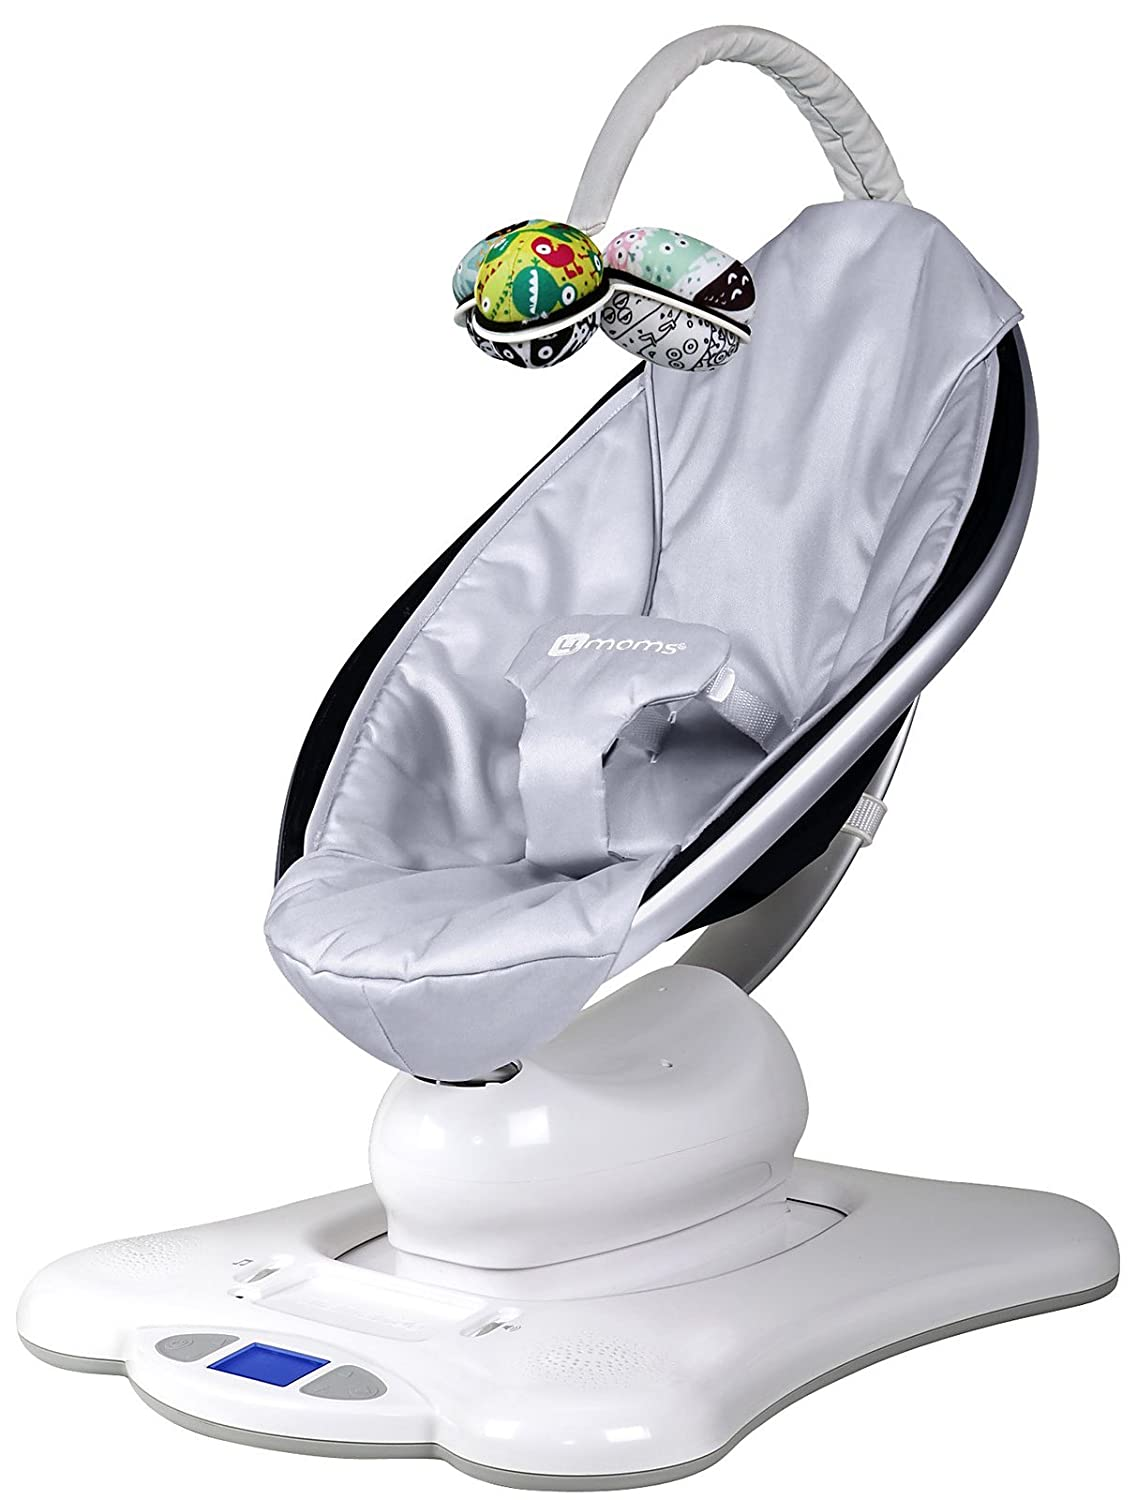 Buy 4moms Mamaroo 2012 Classic Grey Online At Low Prices In India